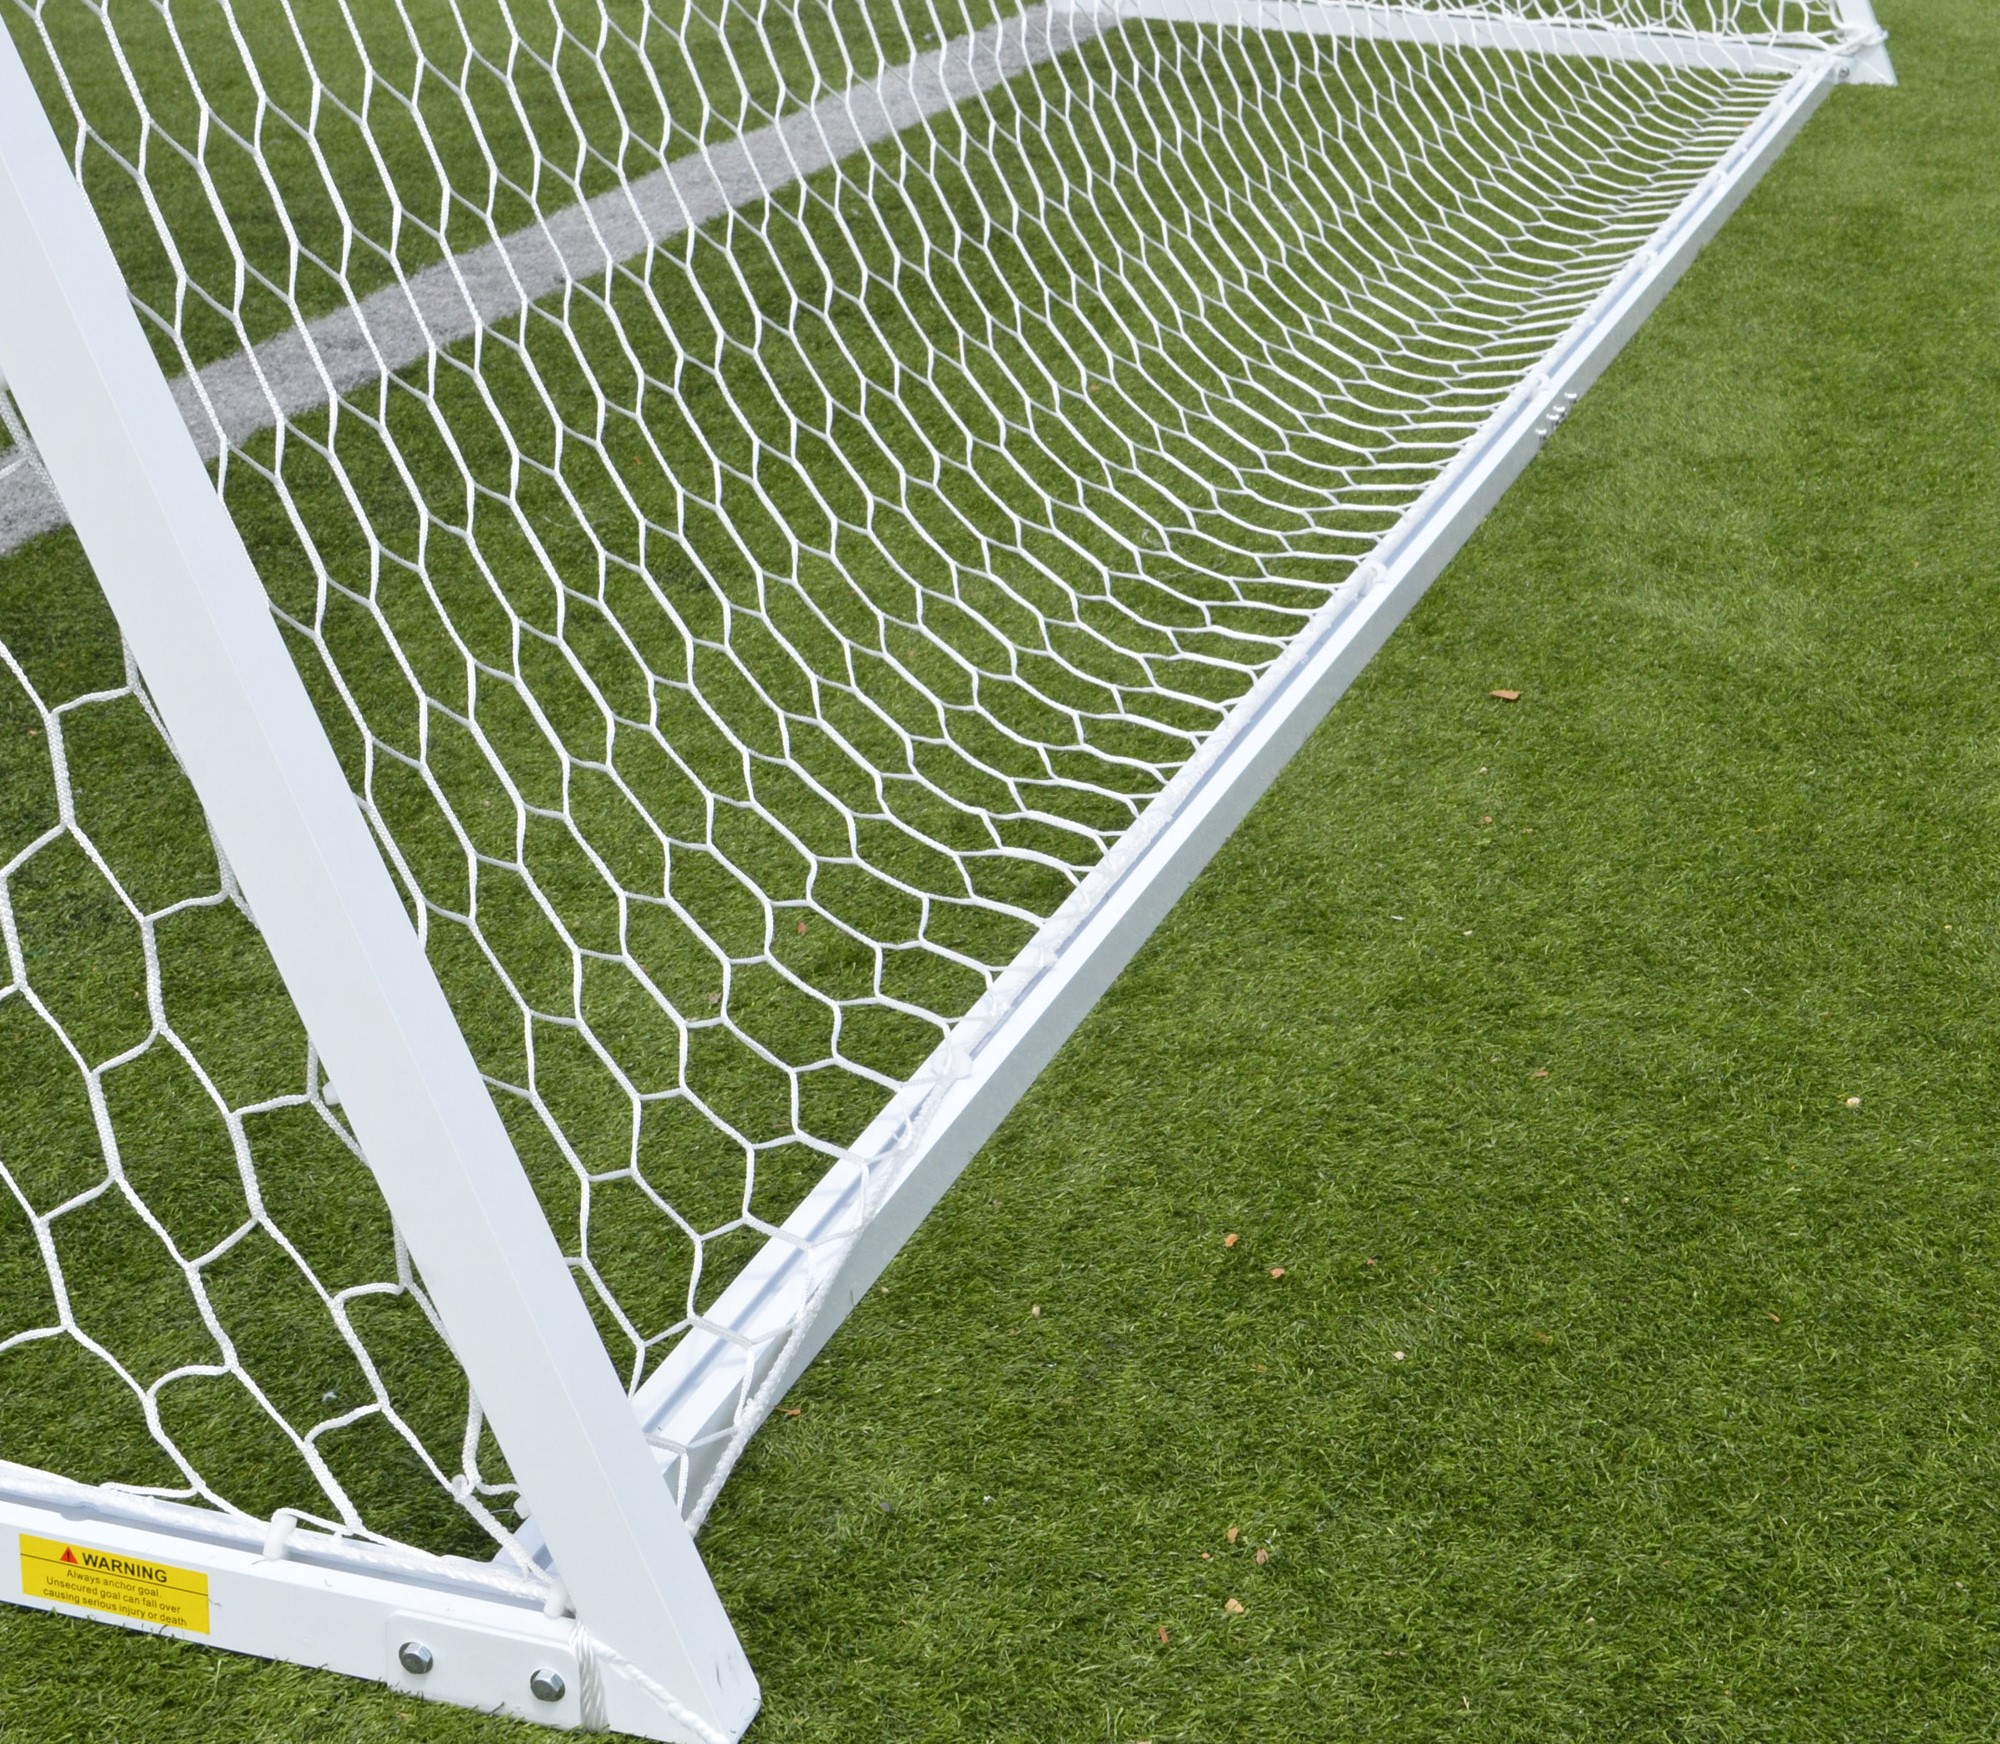 AGORA Channel Pro Soccer Goal - back-bottom bar